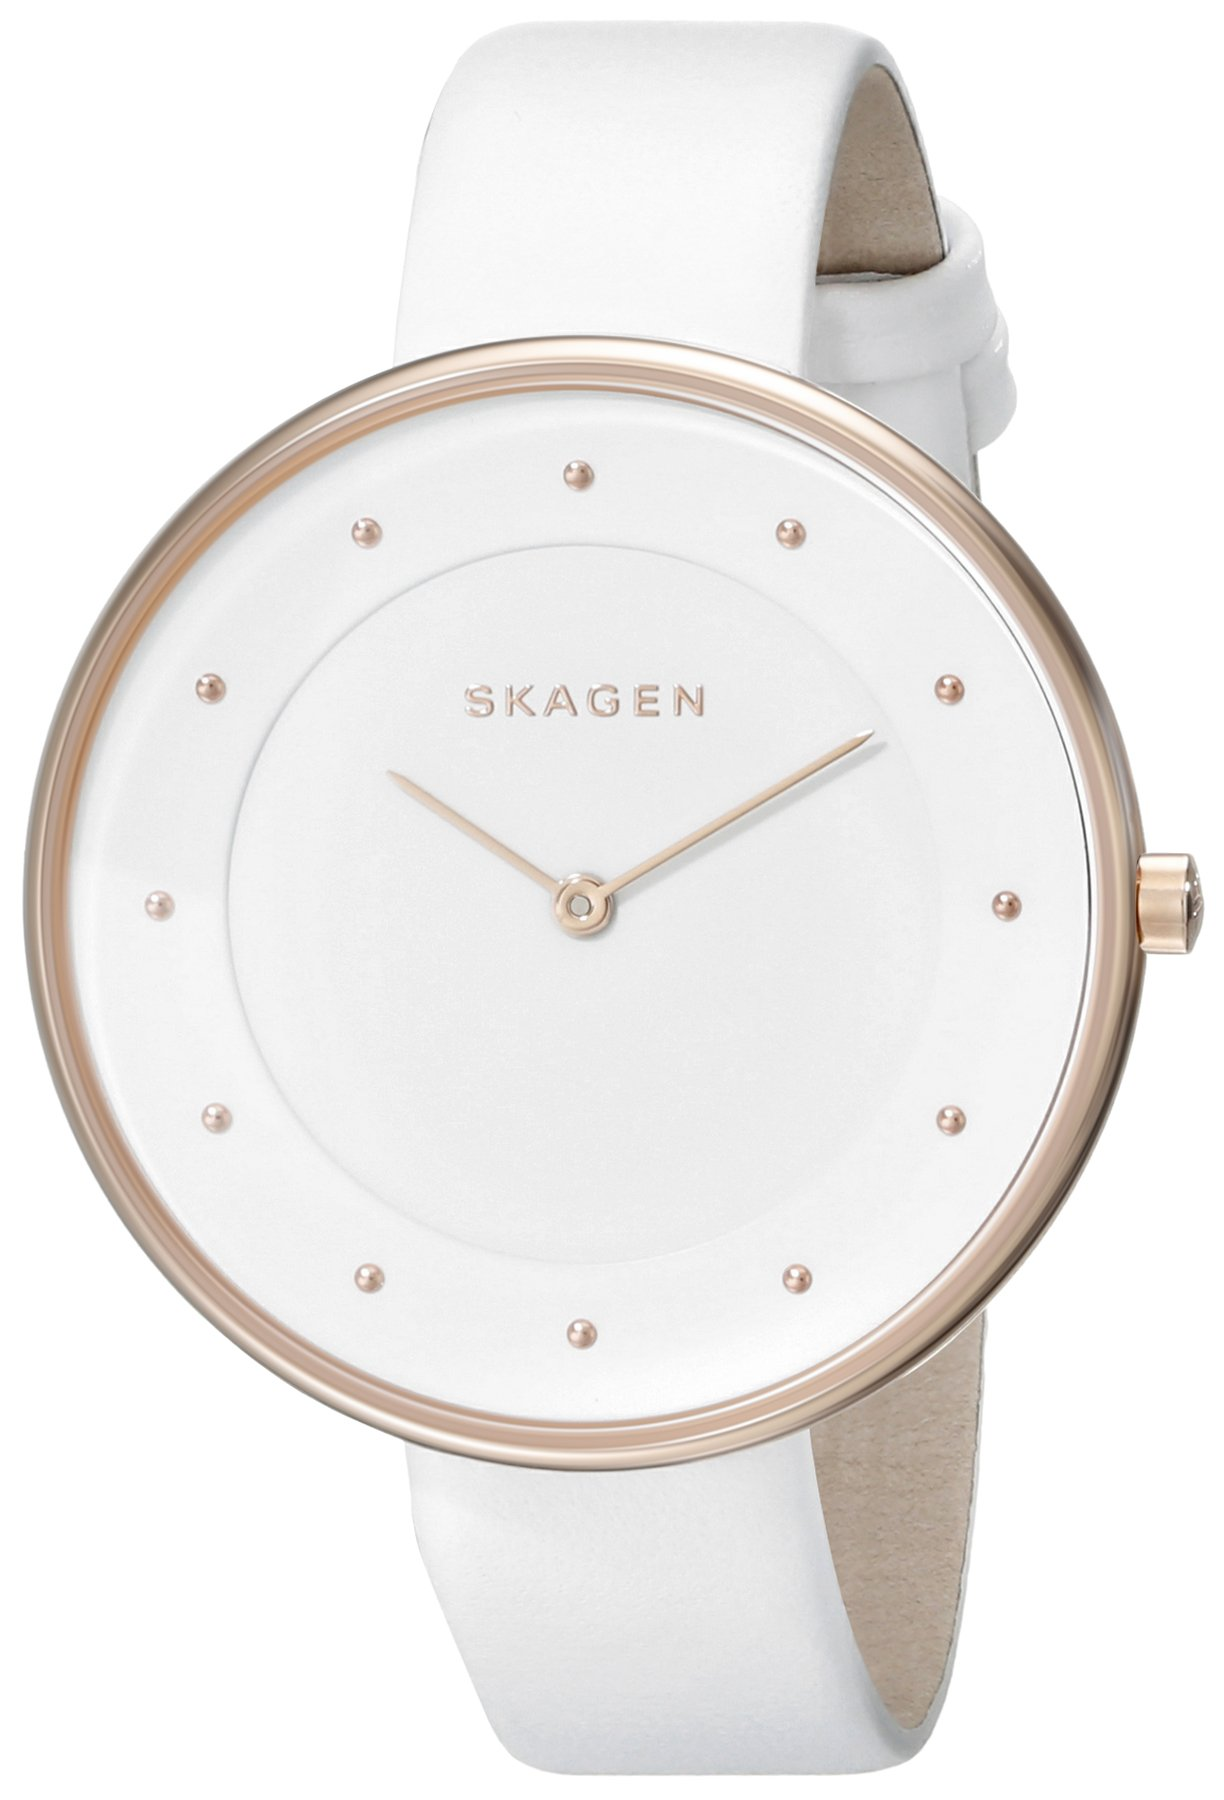 Skagen Women's SKW2291 Gitte Rose Gold-Tone Stainless Steel Watch